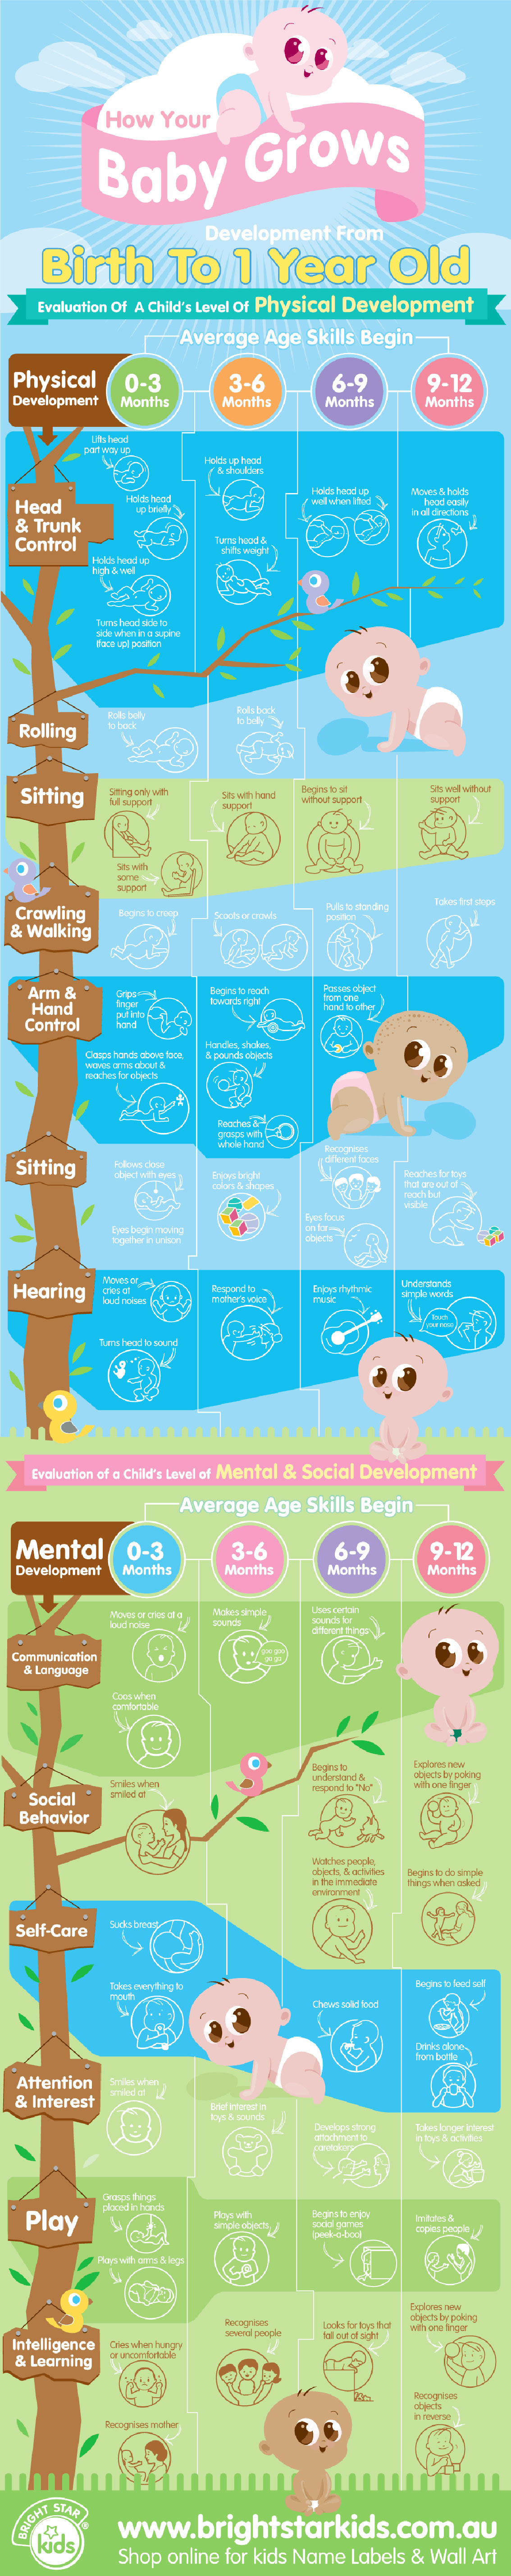 How Your Baby Grow From Birth to 1 Year Old Infographic